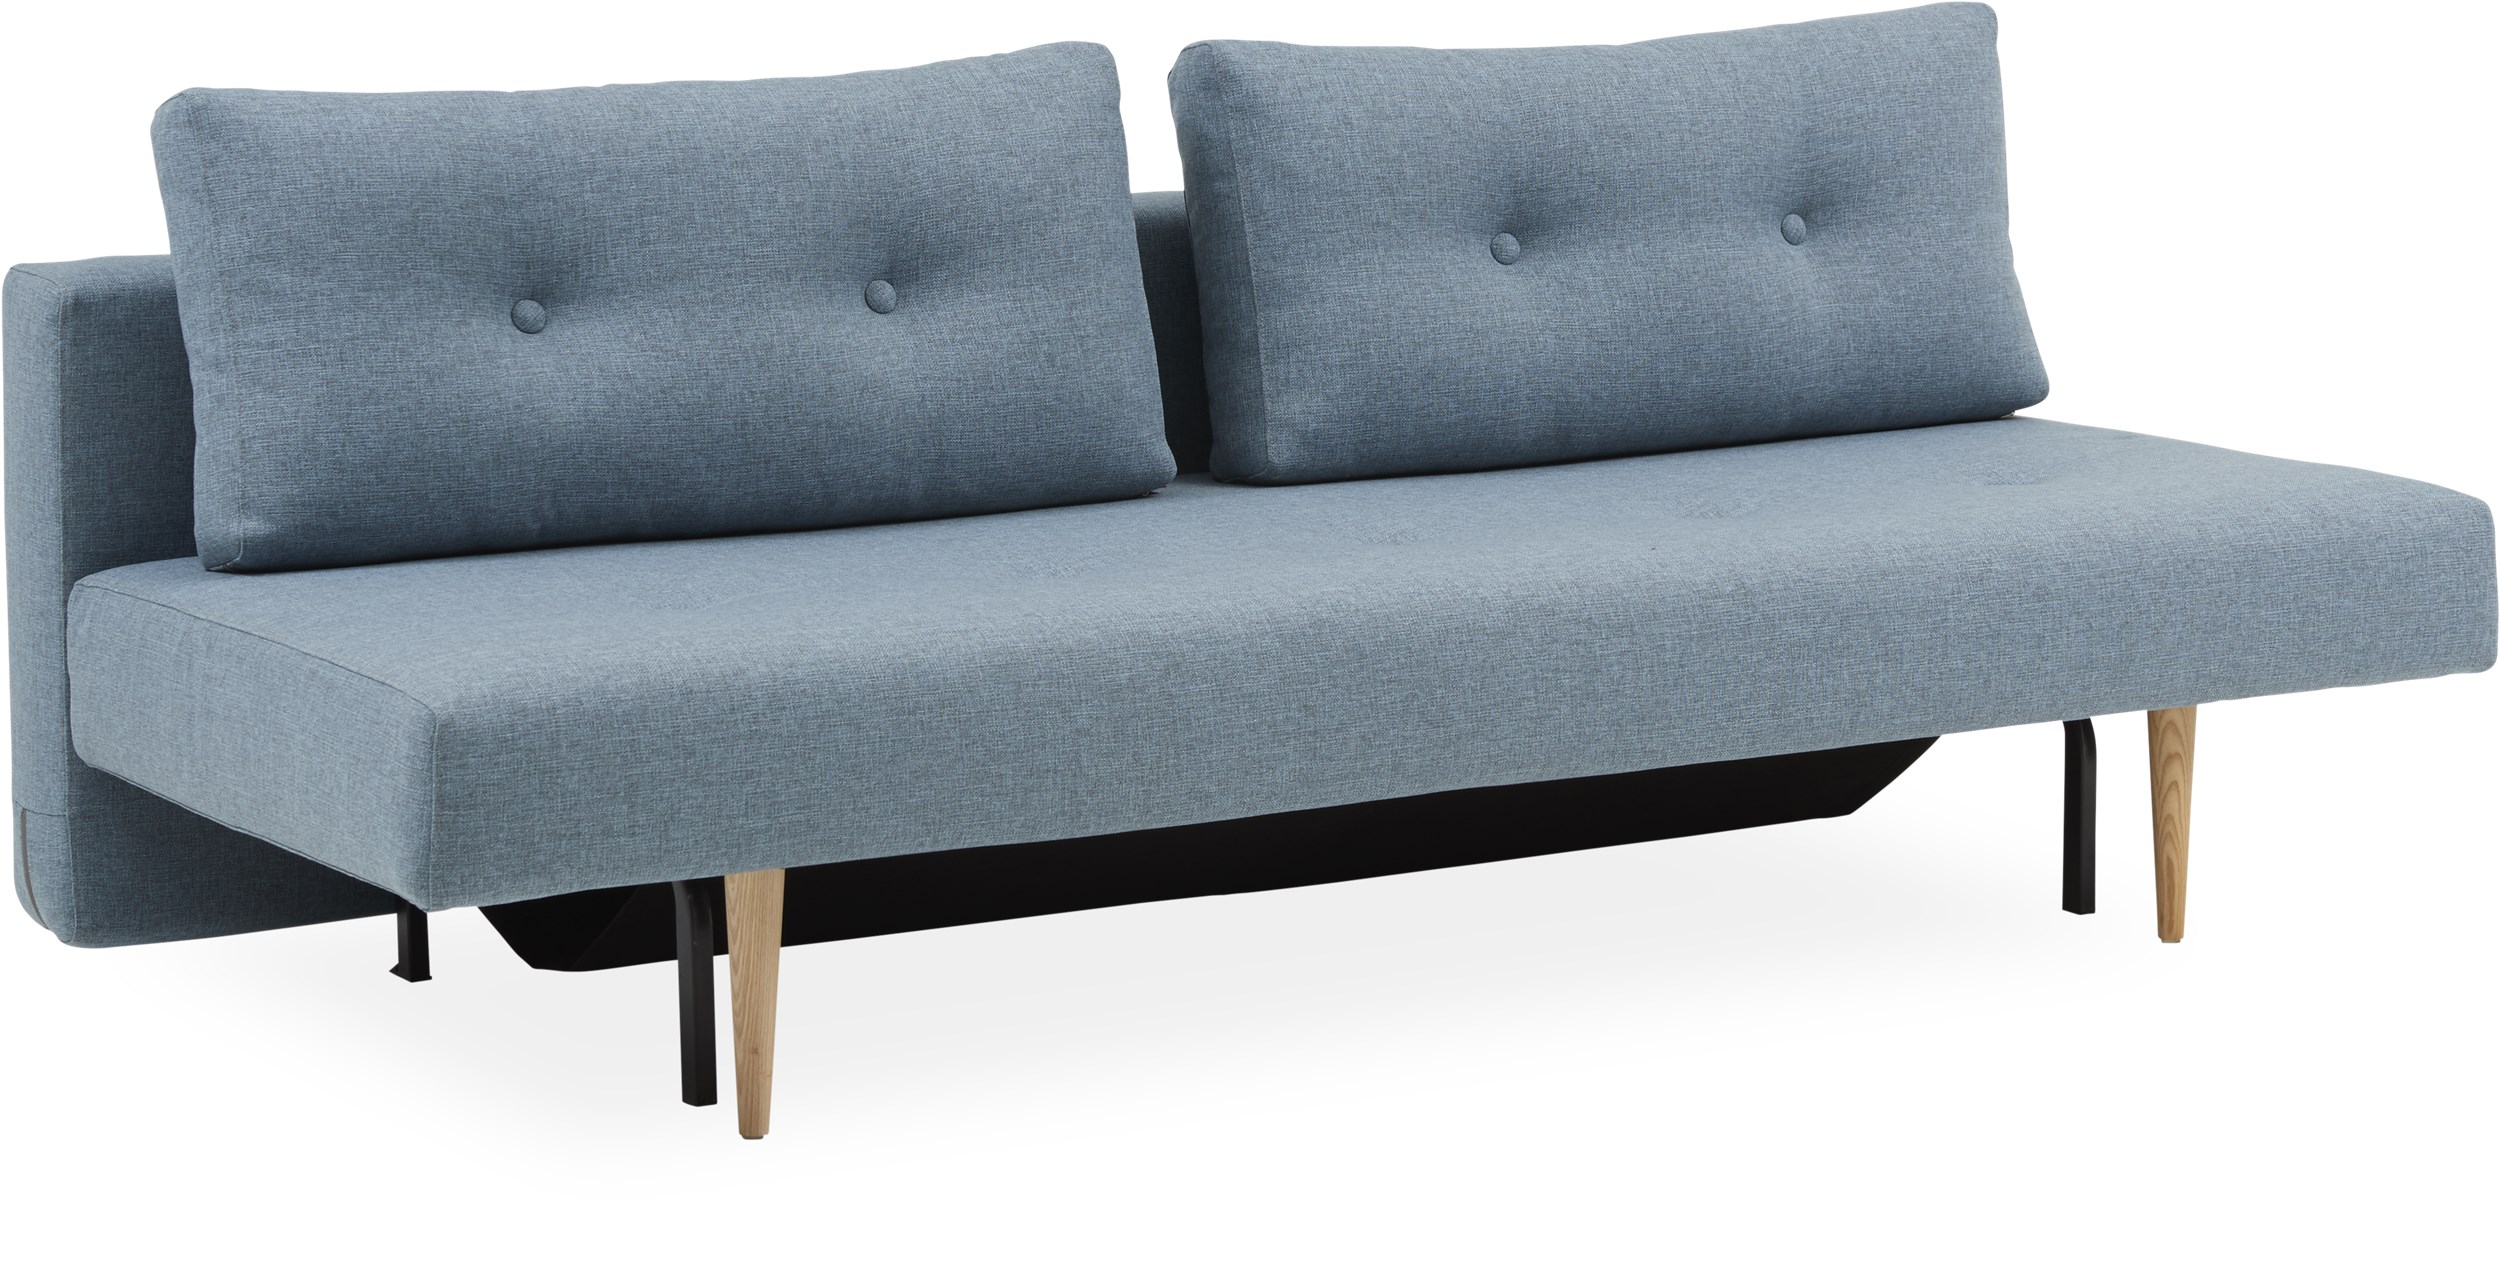 Innovation Living - Recast Plus Sovesofa - Mixed Dance 525 Light Blue og styletto ben i lyst træ